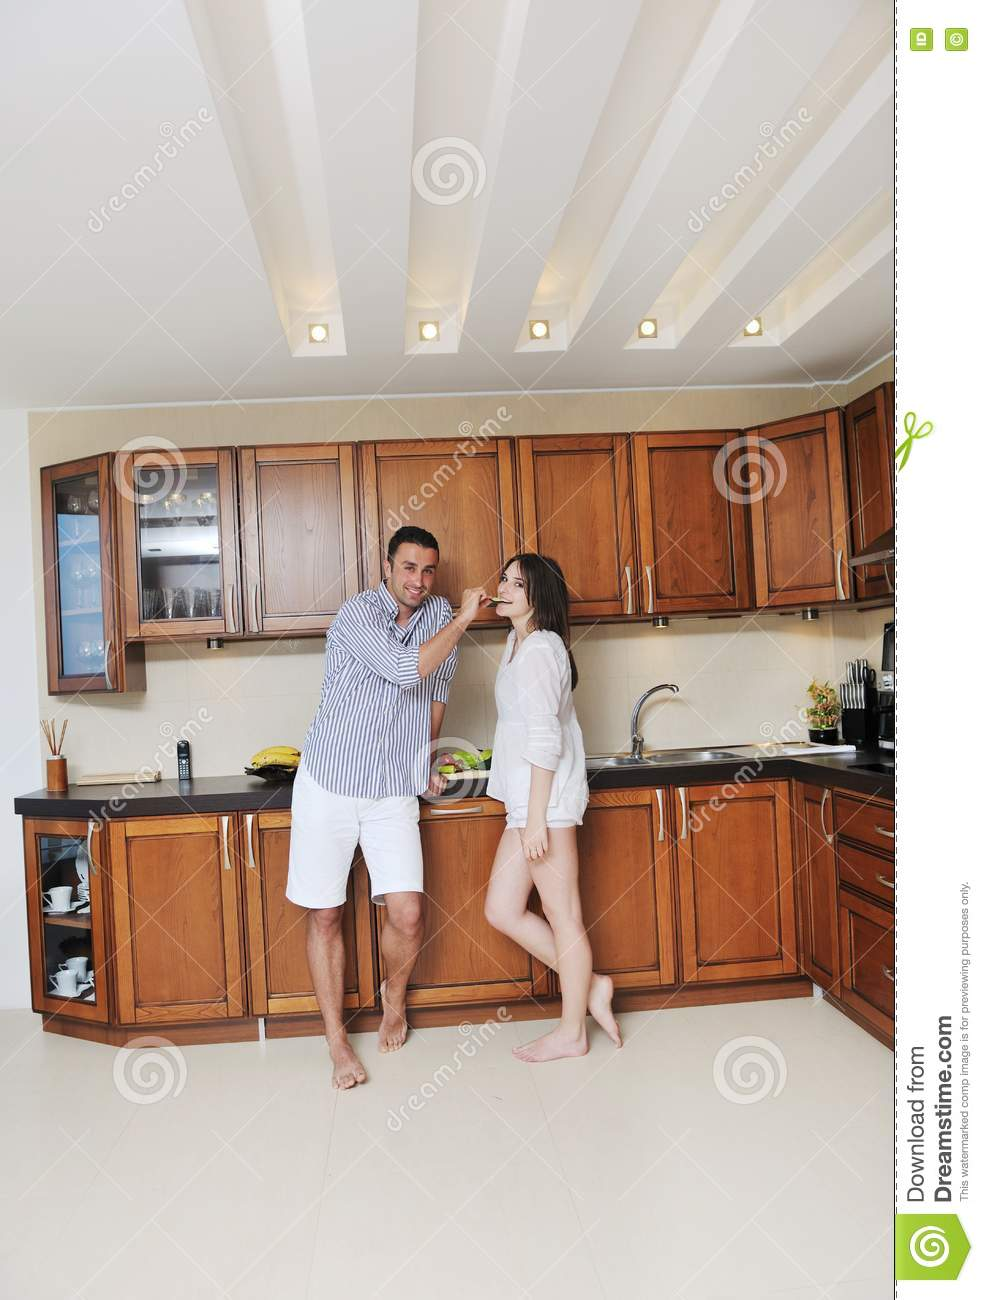 Happy young couple have fun in modern kitchen